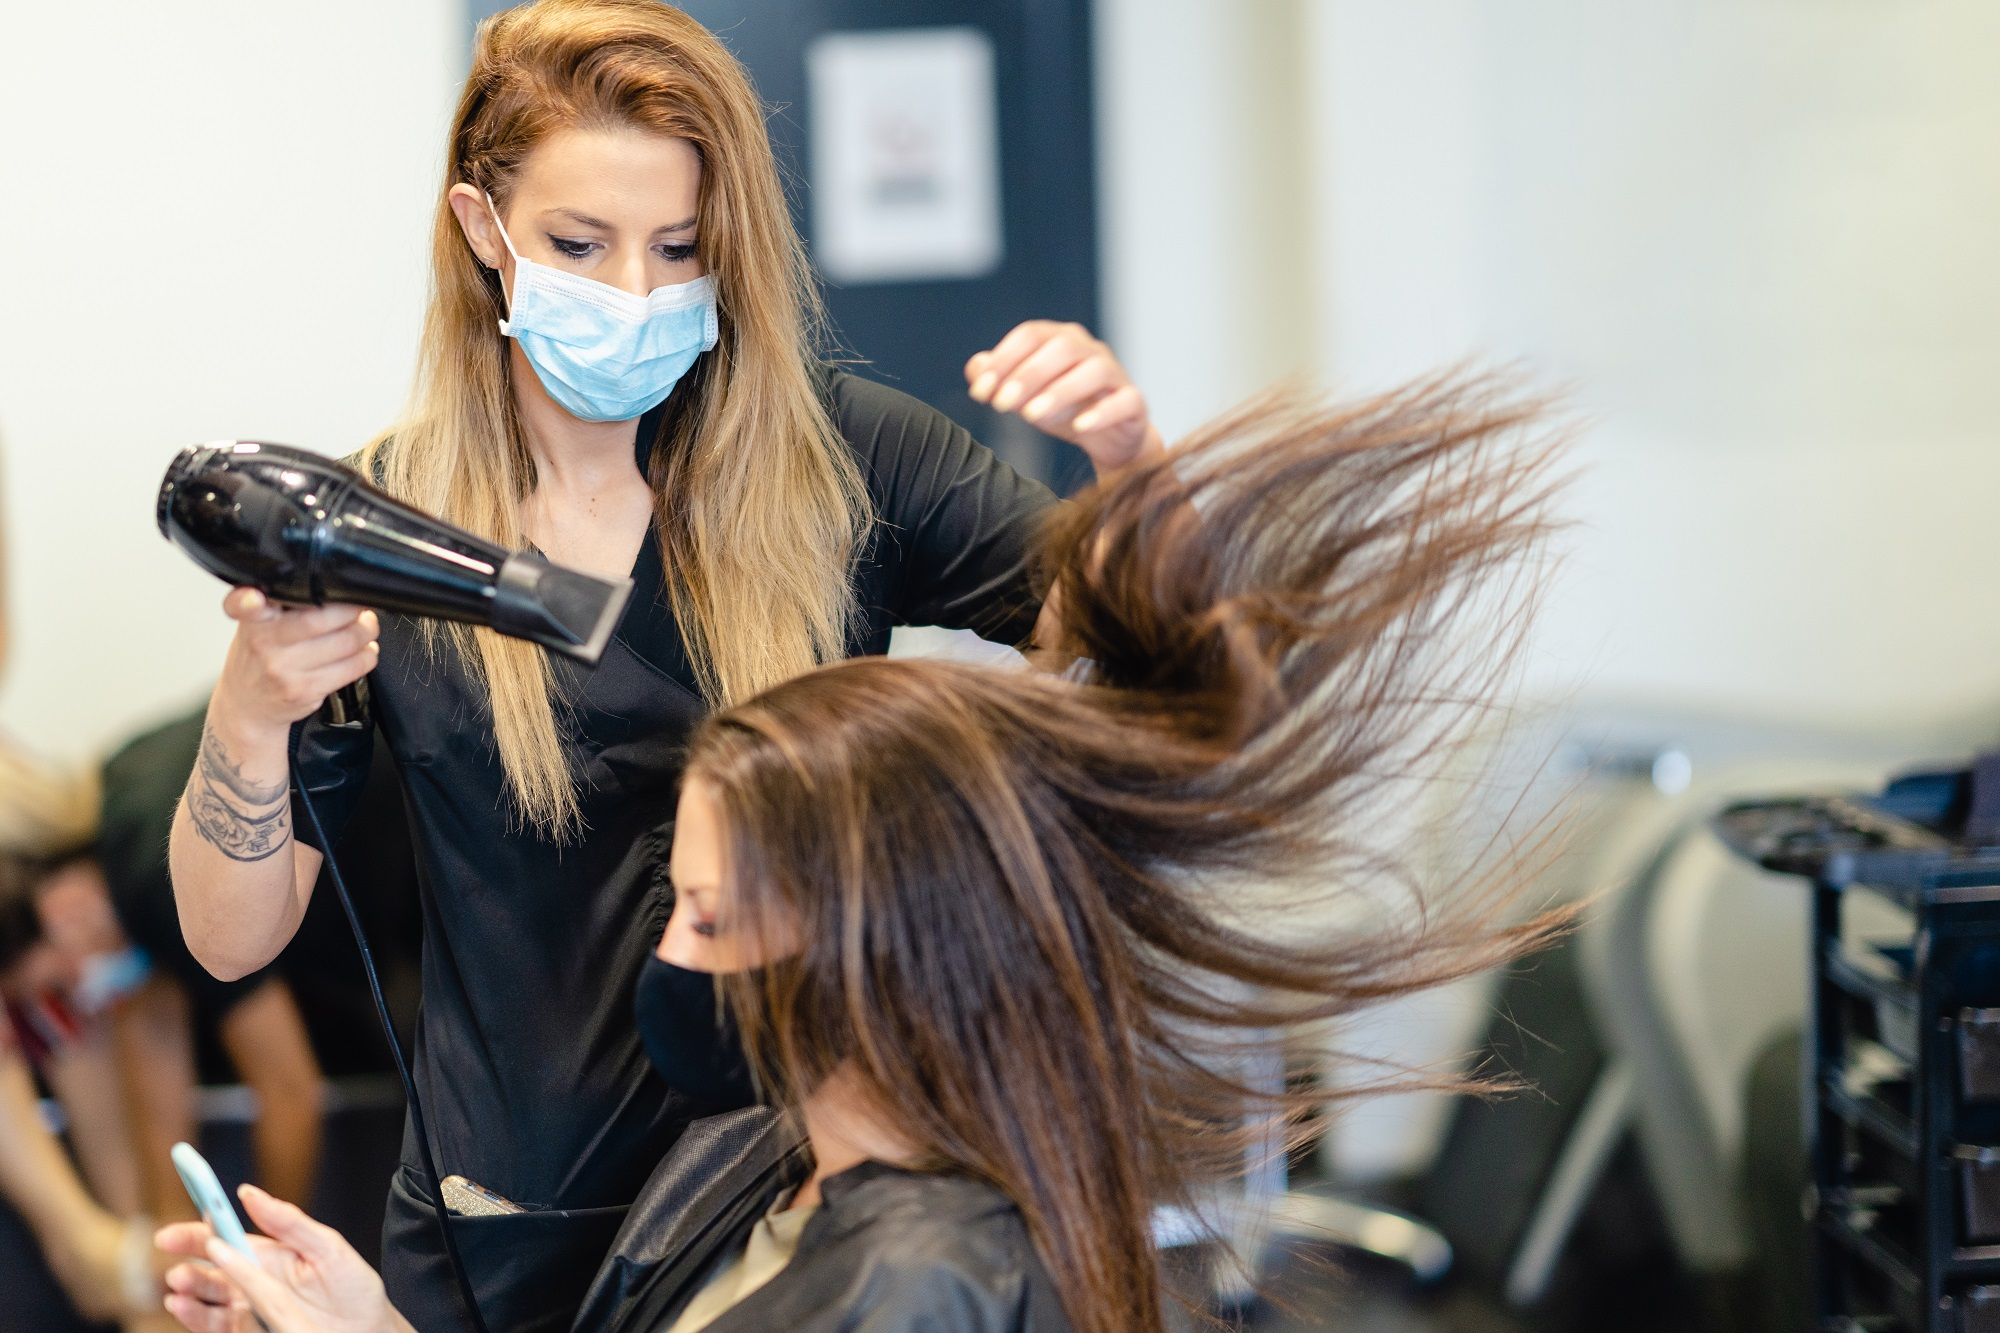 Female hairdresser drying her client's hair with a hairdryer, wearing protective masks